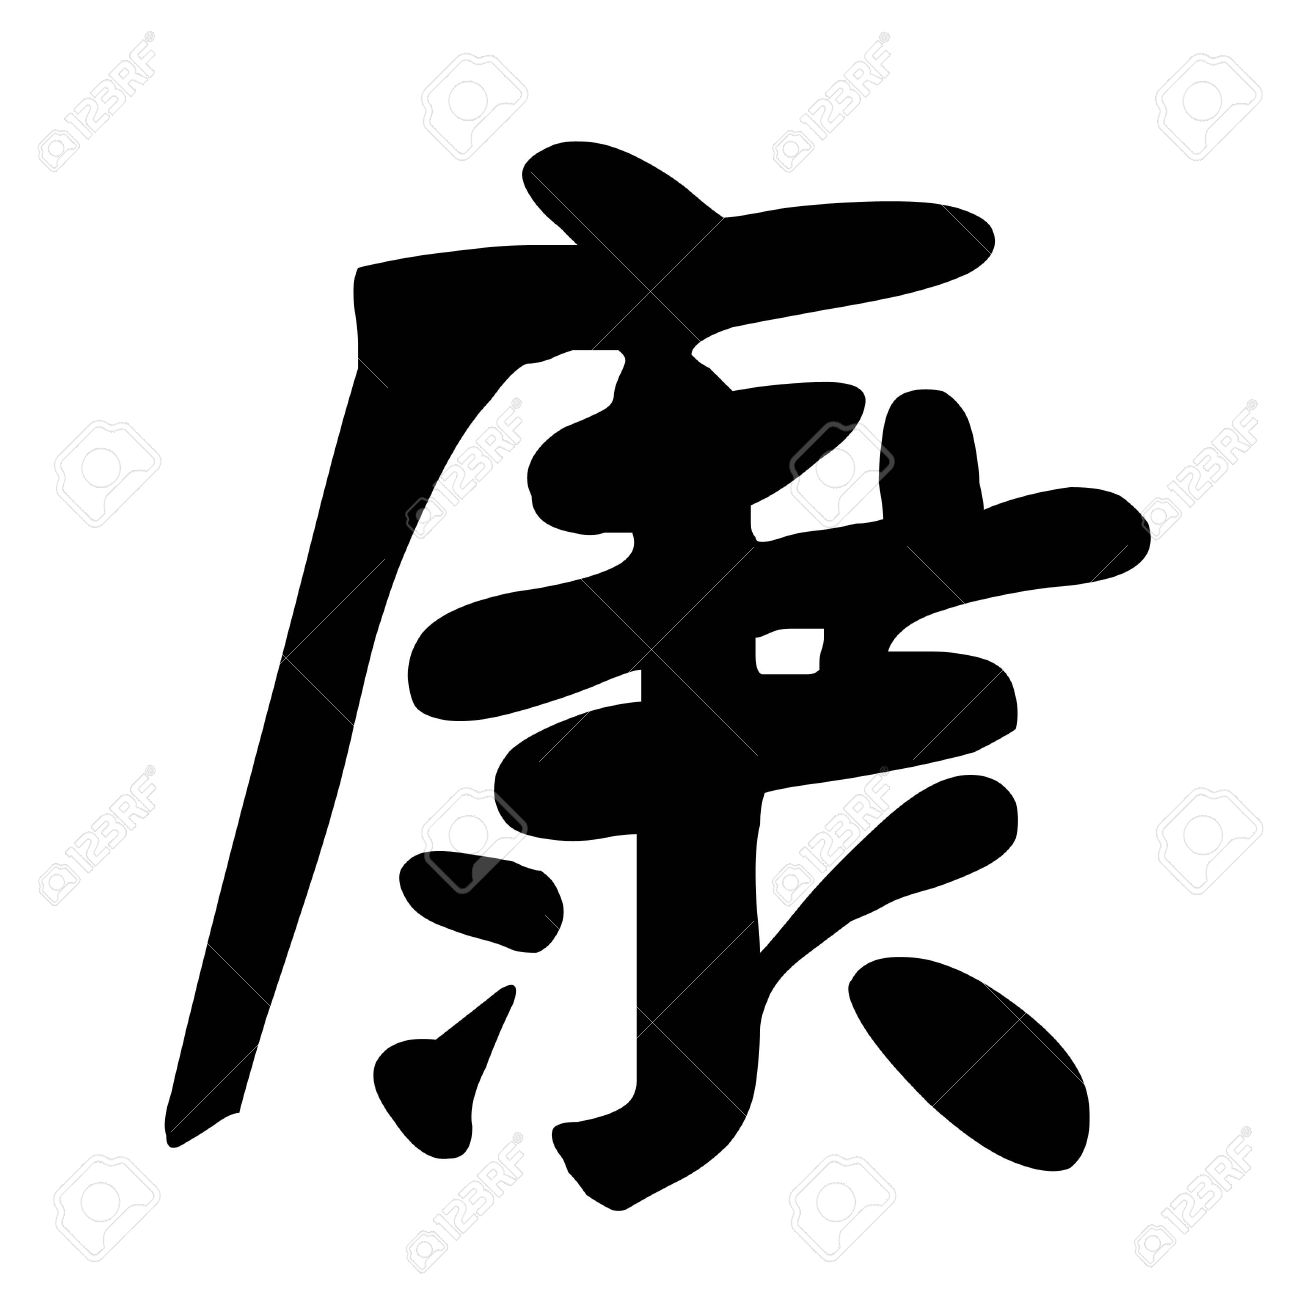 Chinese Calligraphy Character health, healthy Stock Photo - 7678490